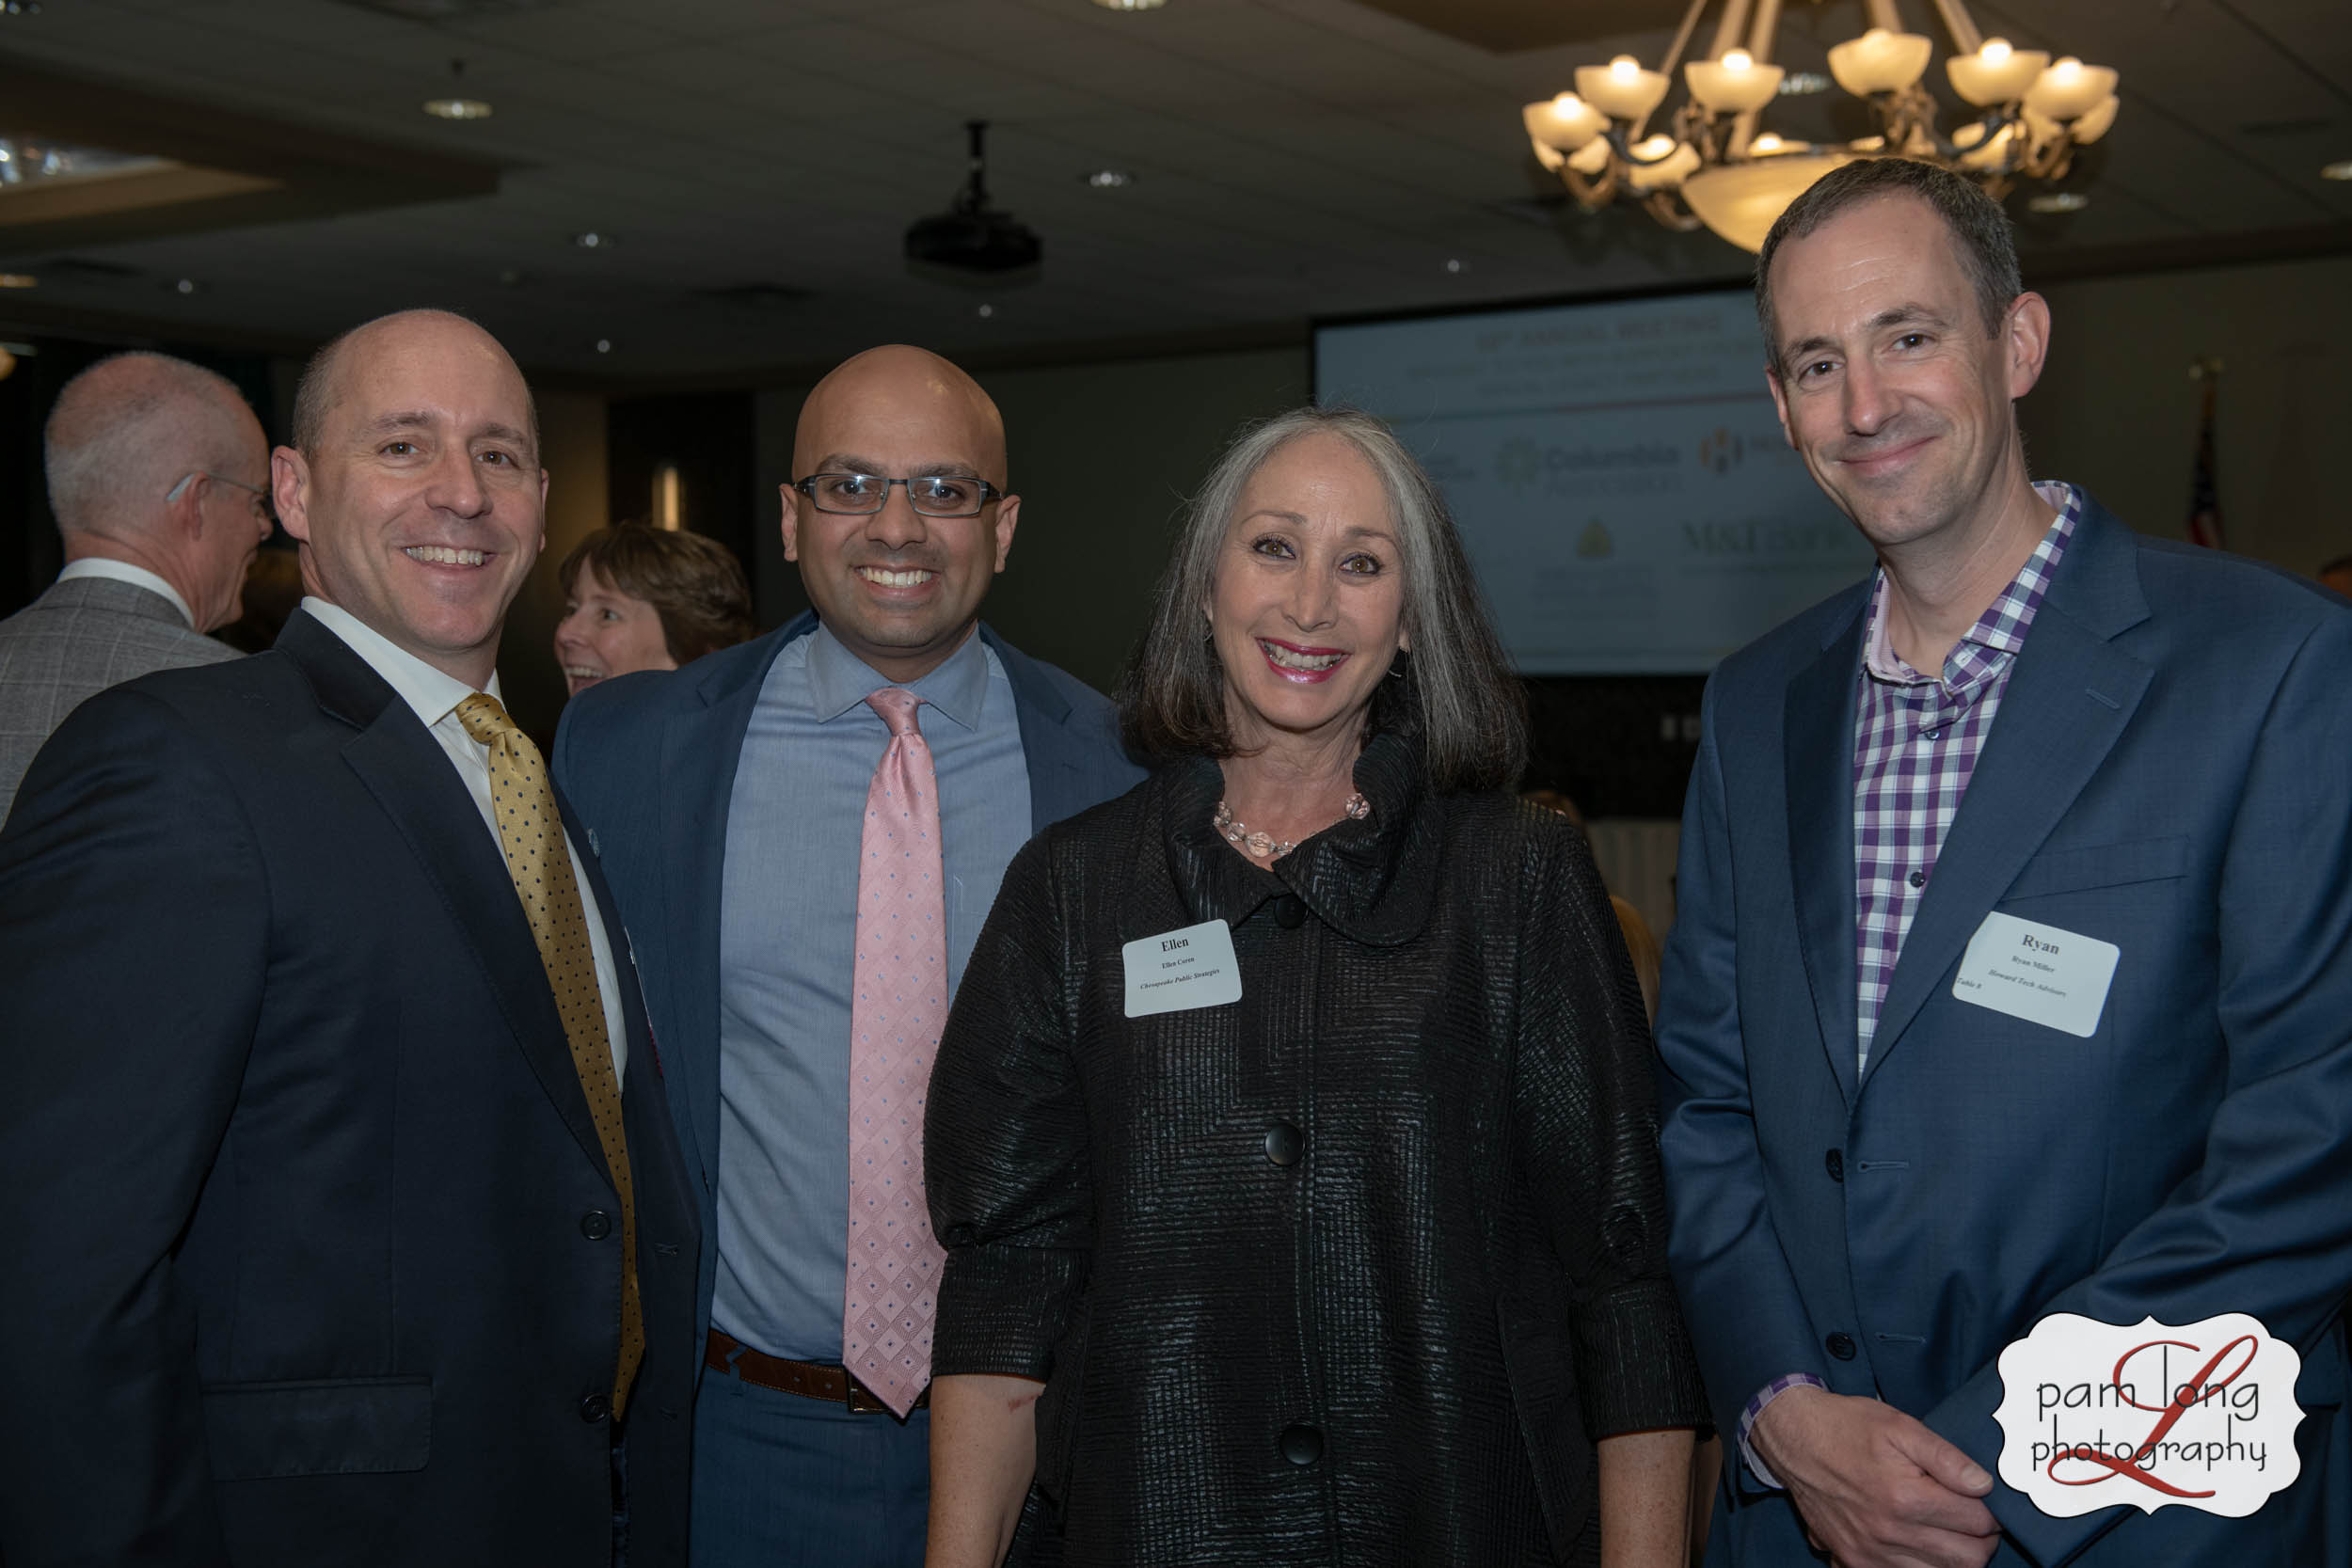 Pam-Long-Photography-HoCo-Chamber-50th-2019-40